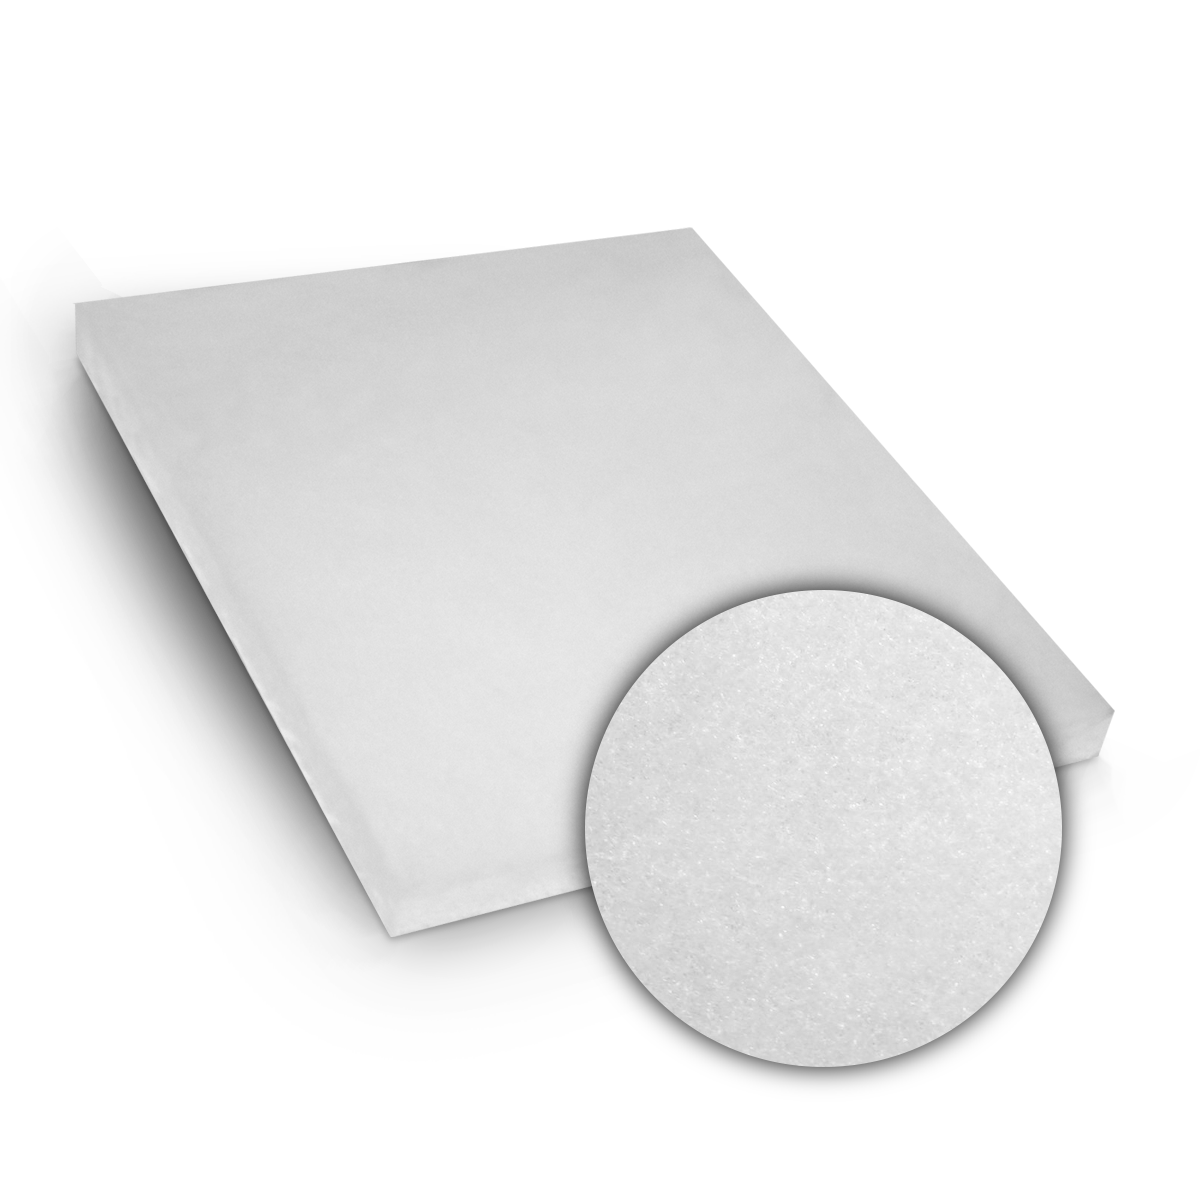 20x24x1 Sure-Fit LEVEL 10 MERV 10 Anti-Microbial Pad